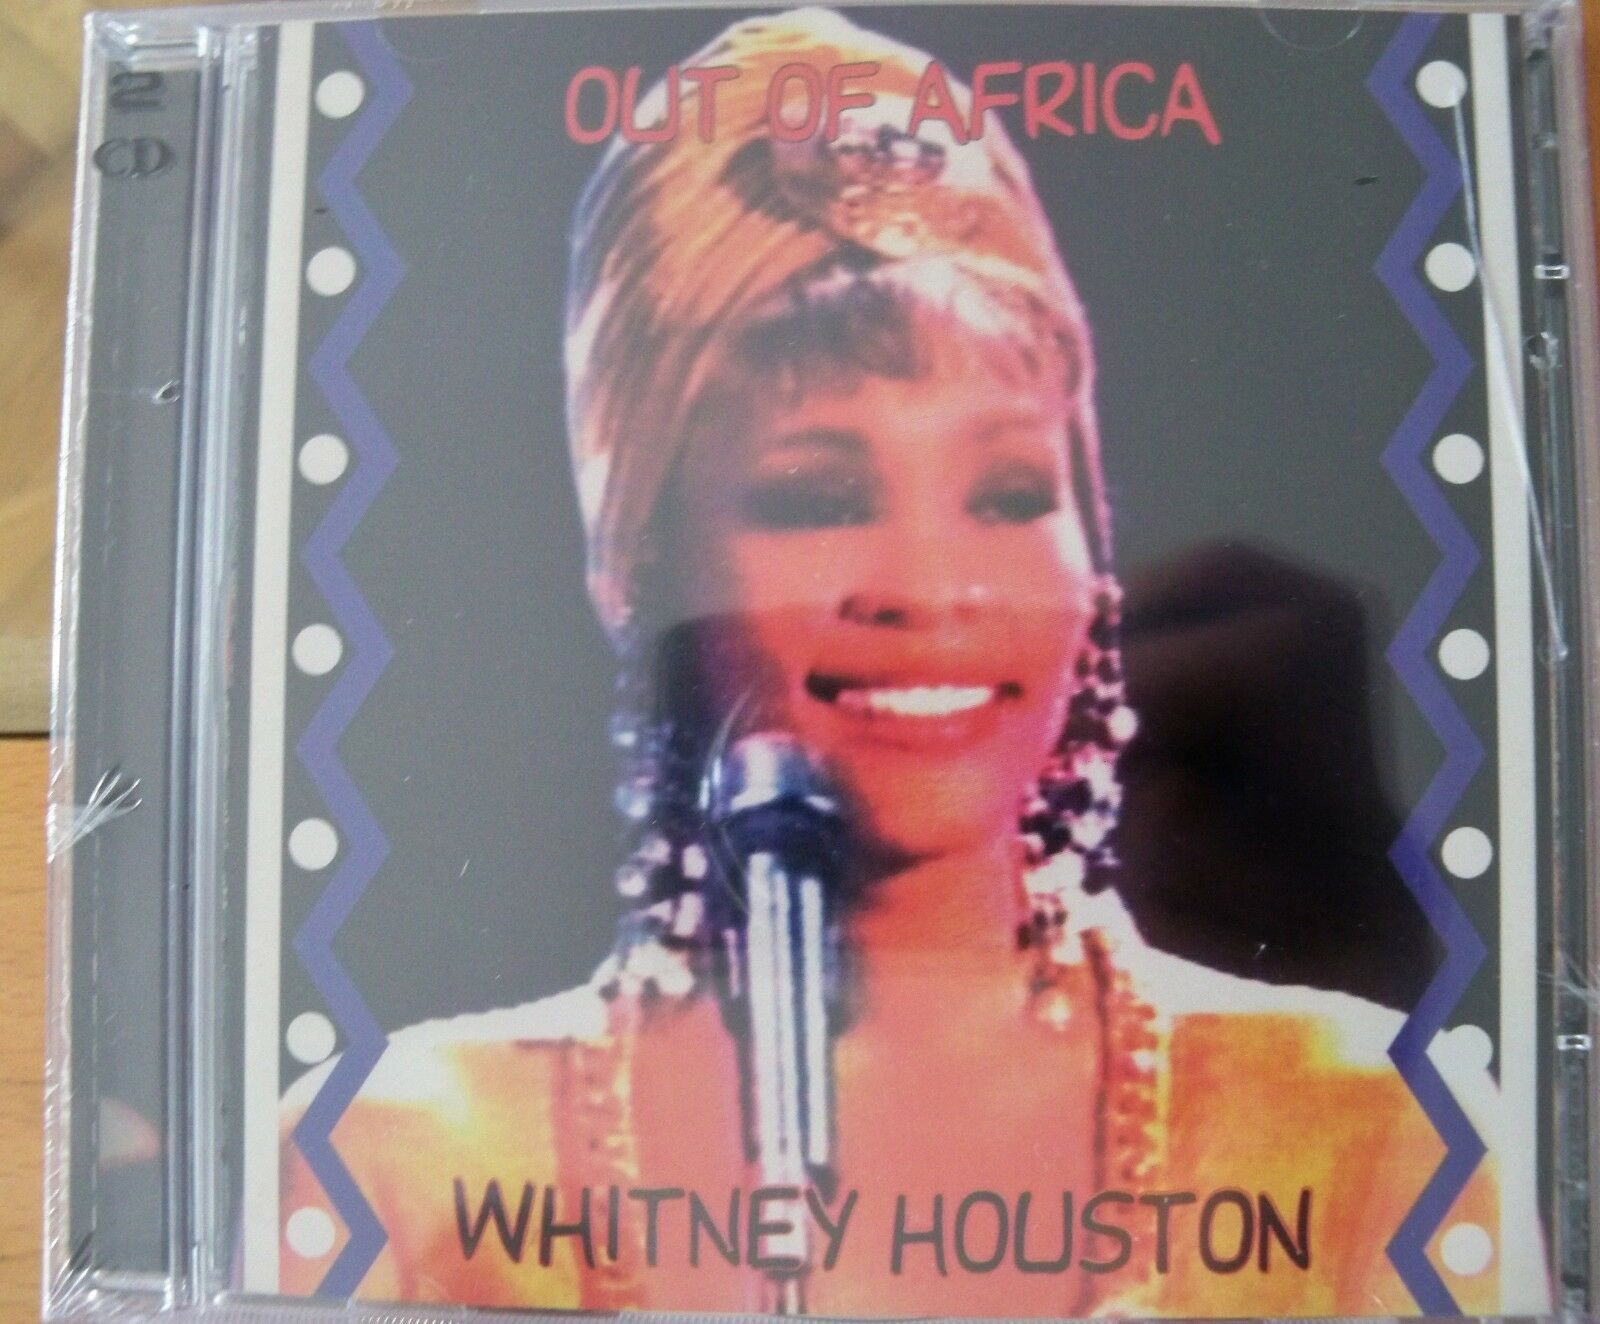 WHITNEY HOUSTON  OUT OF AFRICA  DOUBLE CD LIVE JOHANNESBURG SOUTH AFRICA 1994